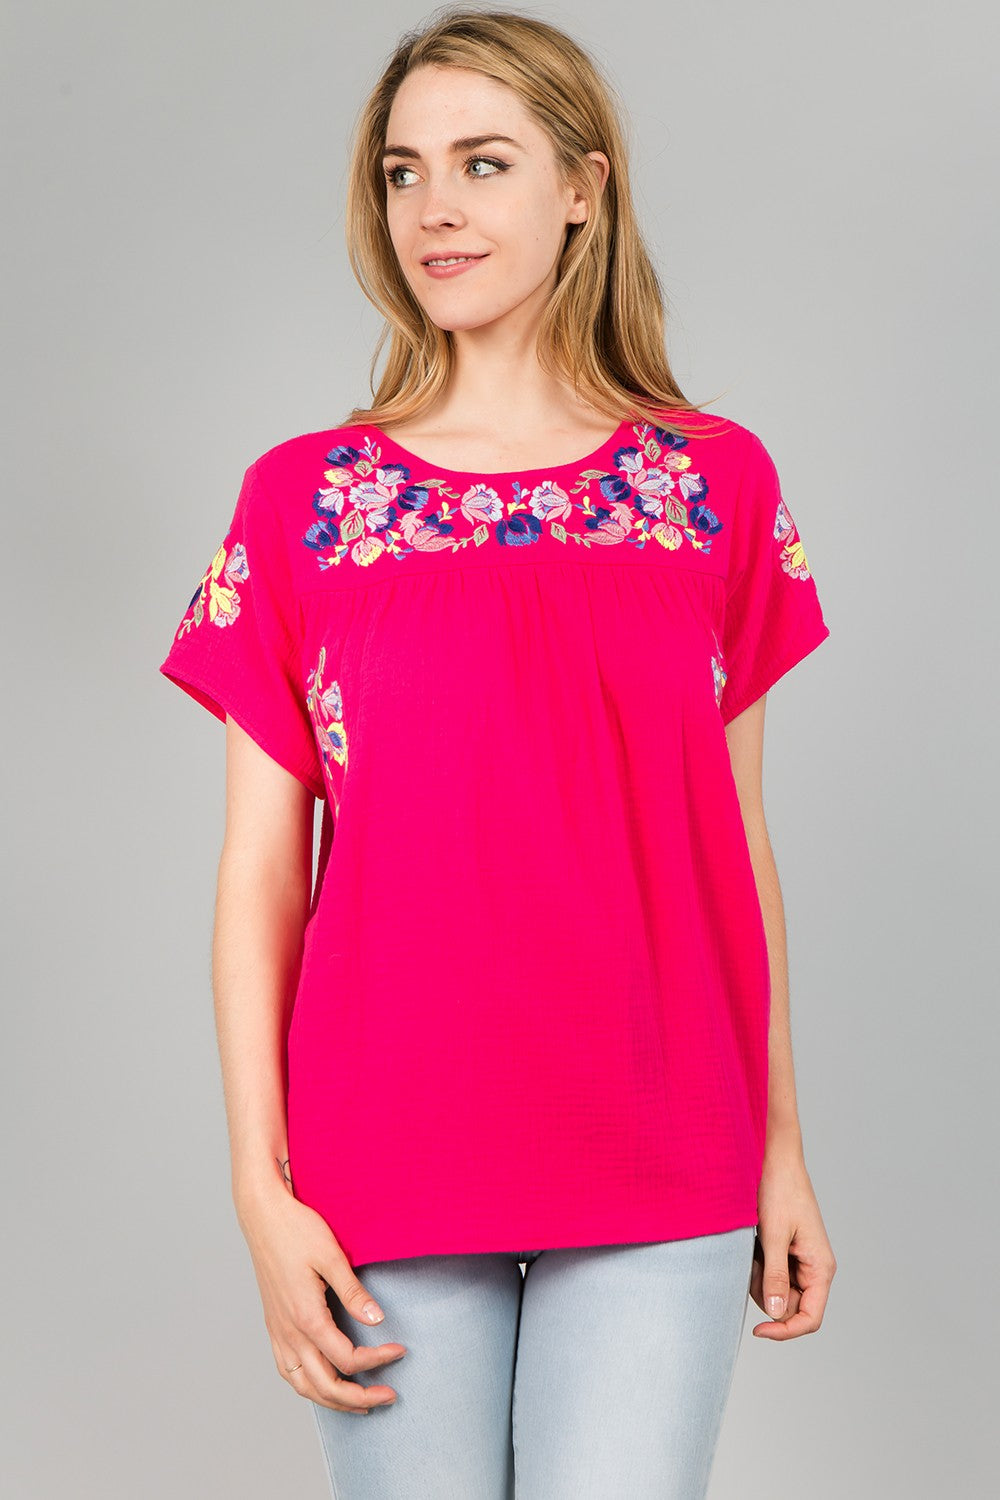 The Greer Top